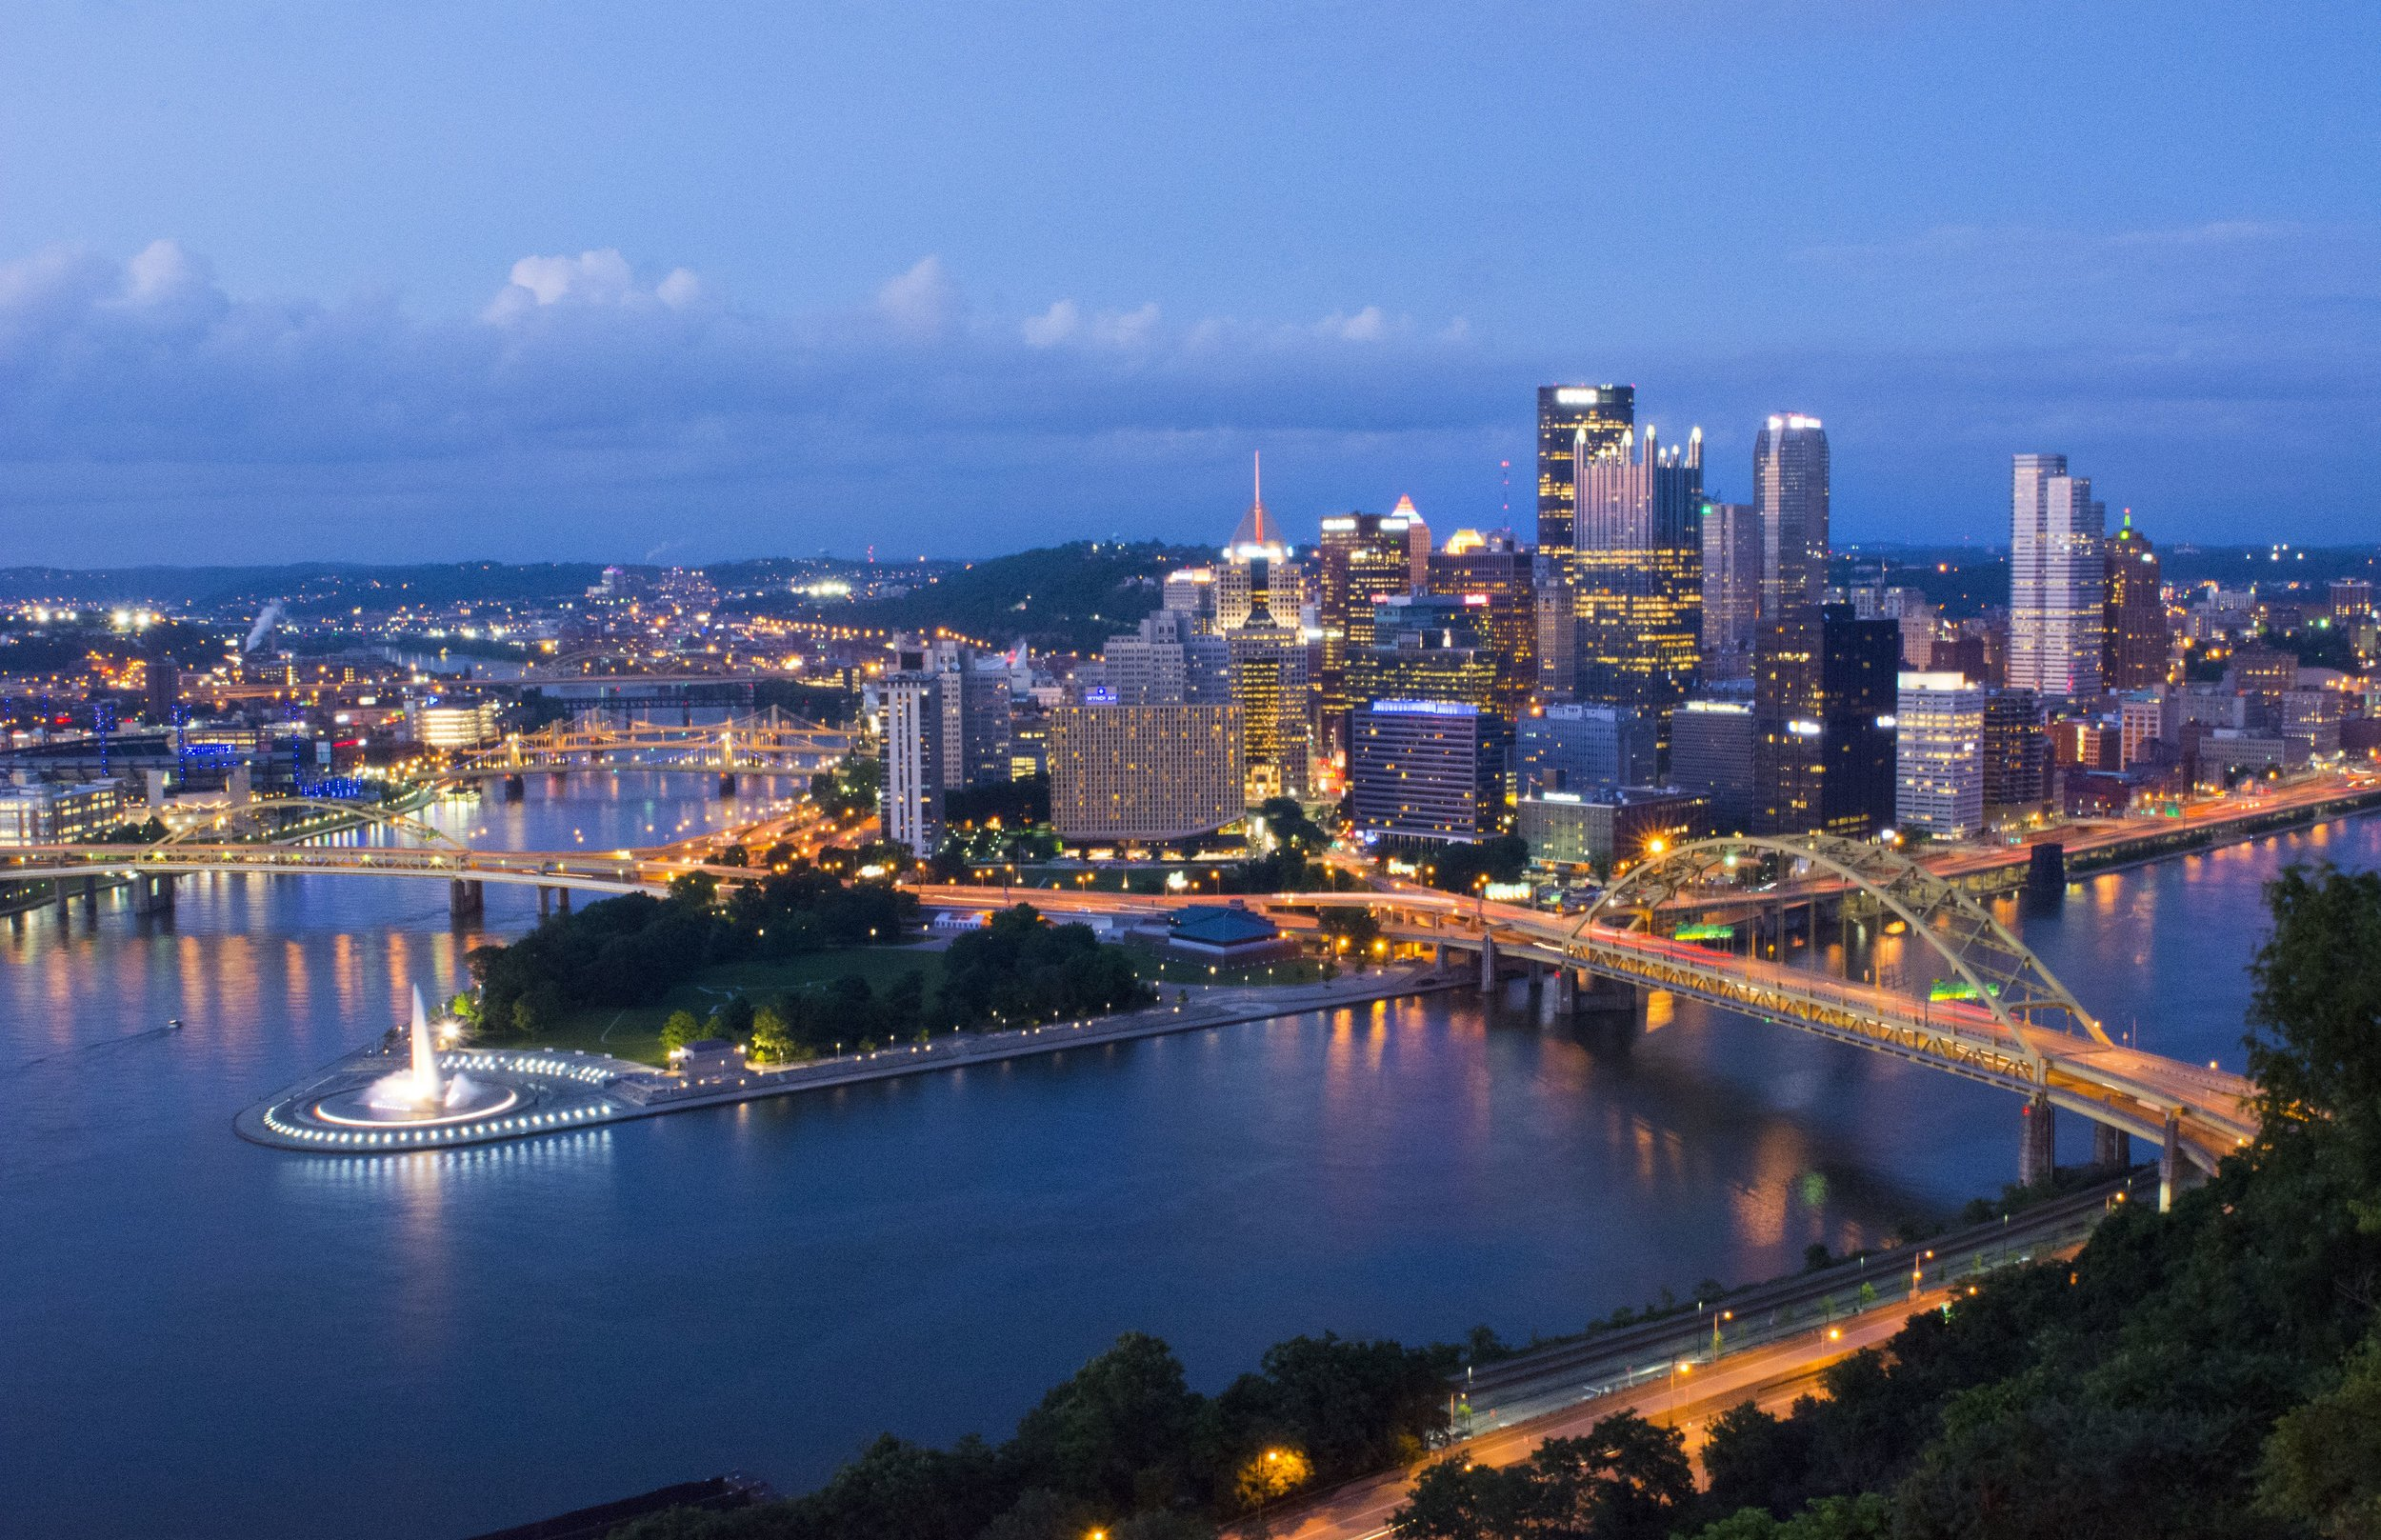 pittsburgh-pennsylvania-skyline-from-mt-washington-of-downtown-city-and-rivers-at-golden-triangle-at-night-exposure-of-three-rivers-and-fountain-at-point-547077117-58eb946f5f9b58ef7e1d2320.jpg